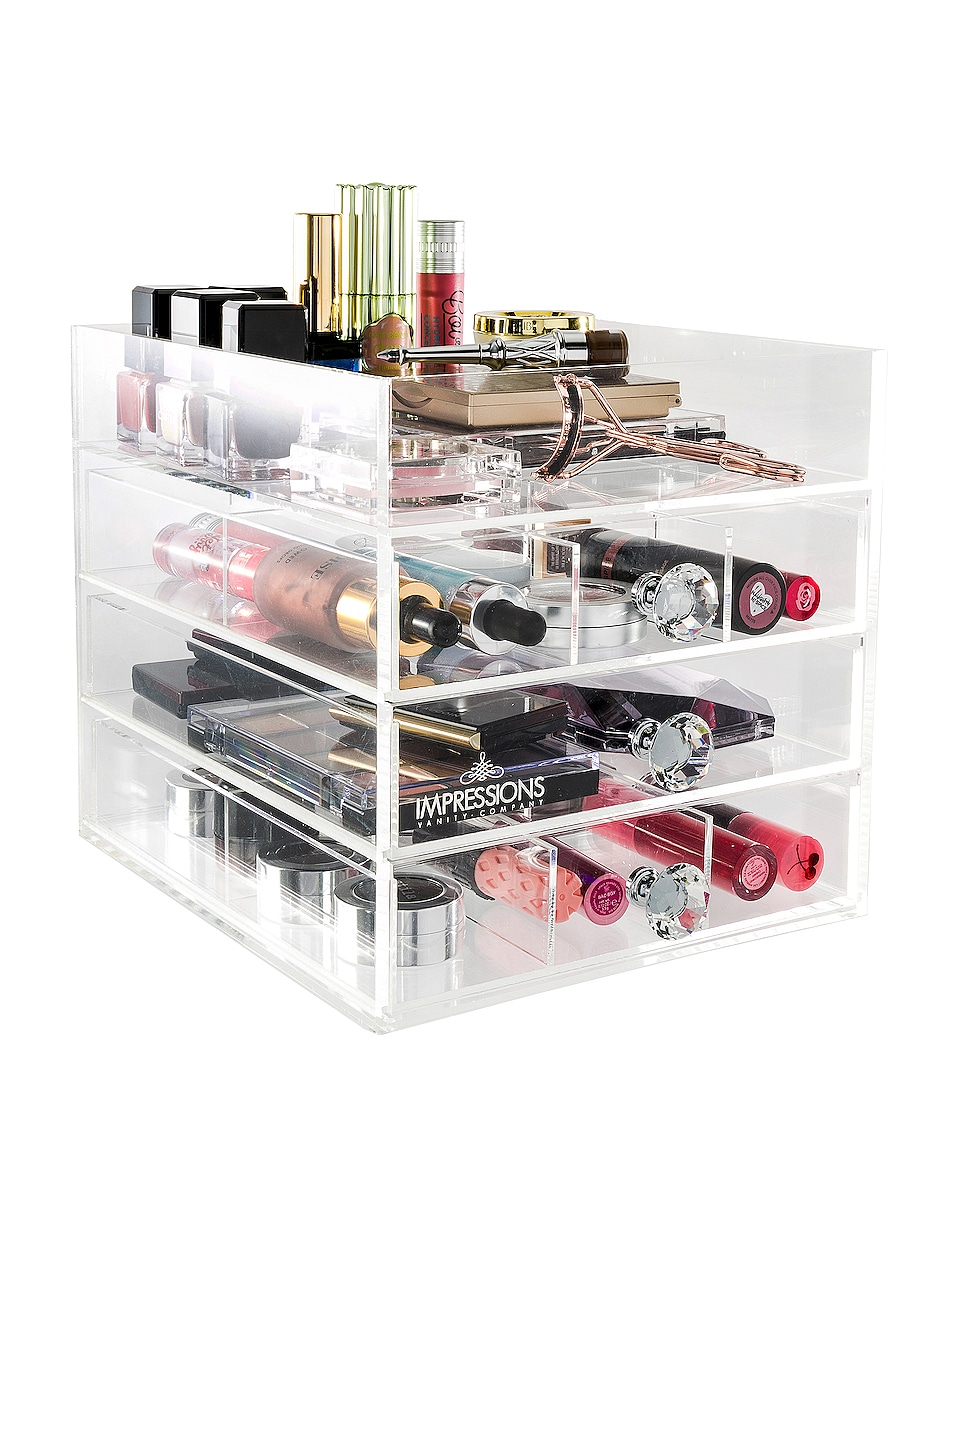 IMPRESSIONS VANITY Diamond Collection Open Top Petite 4-Tier Acrylic Makeup Organizer in Beauty: Na